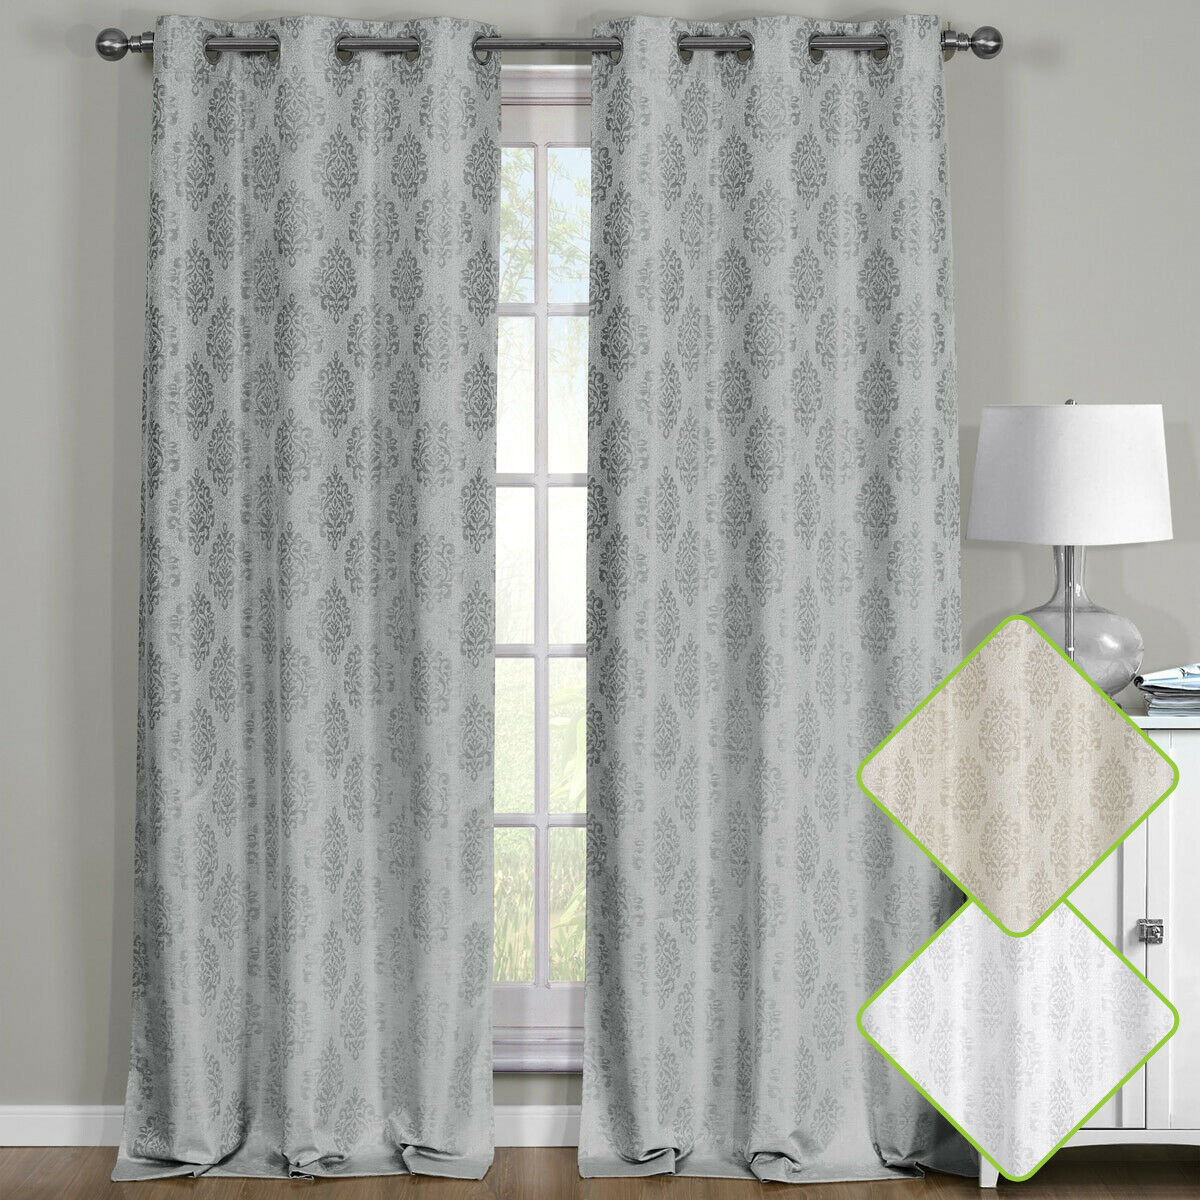 Paisley Thermal Blackout Curtain Panels Grommet Top Window Jacquard Curtain Pair For Thermal Insulated Blackout Grommet Top Curtain Panel Pairs (View 15 of 30)